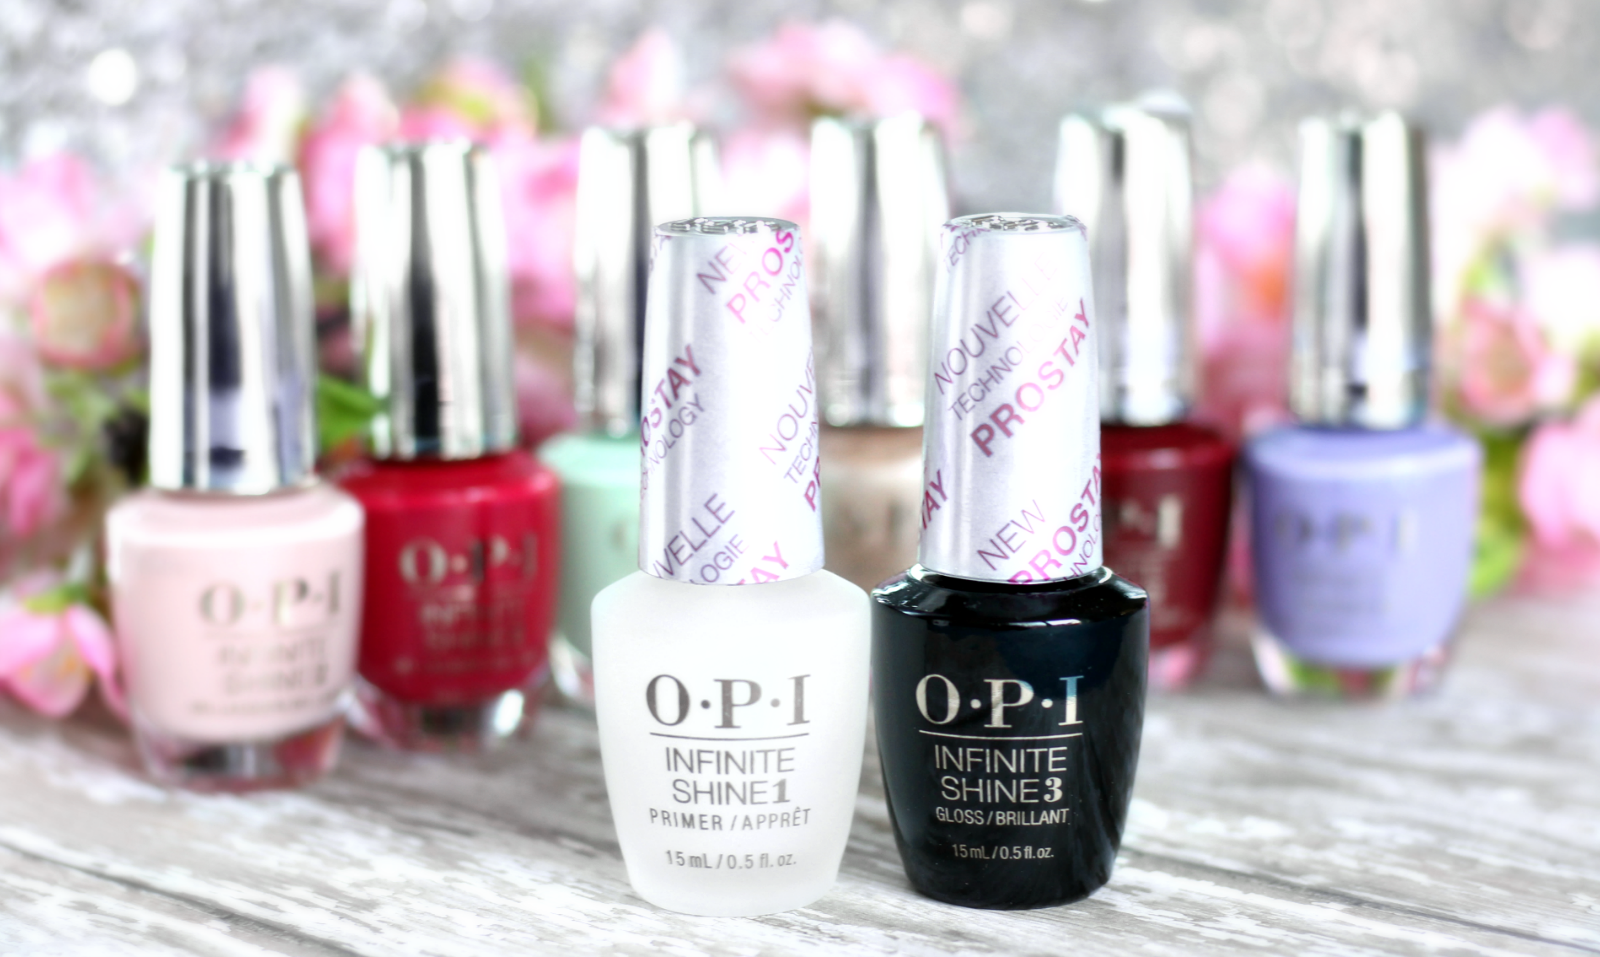 New OPI Infinite Shine Pro Stay Primer + Gloss